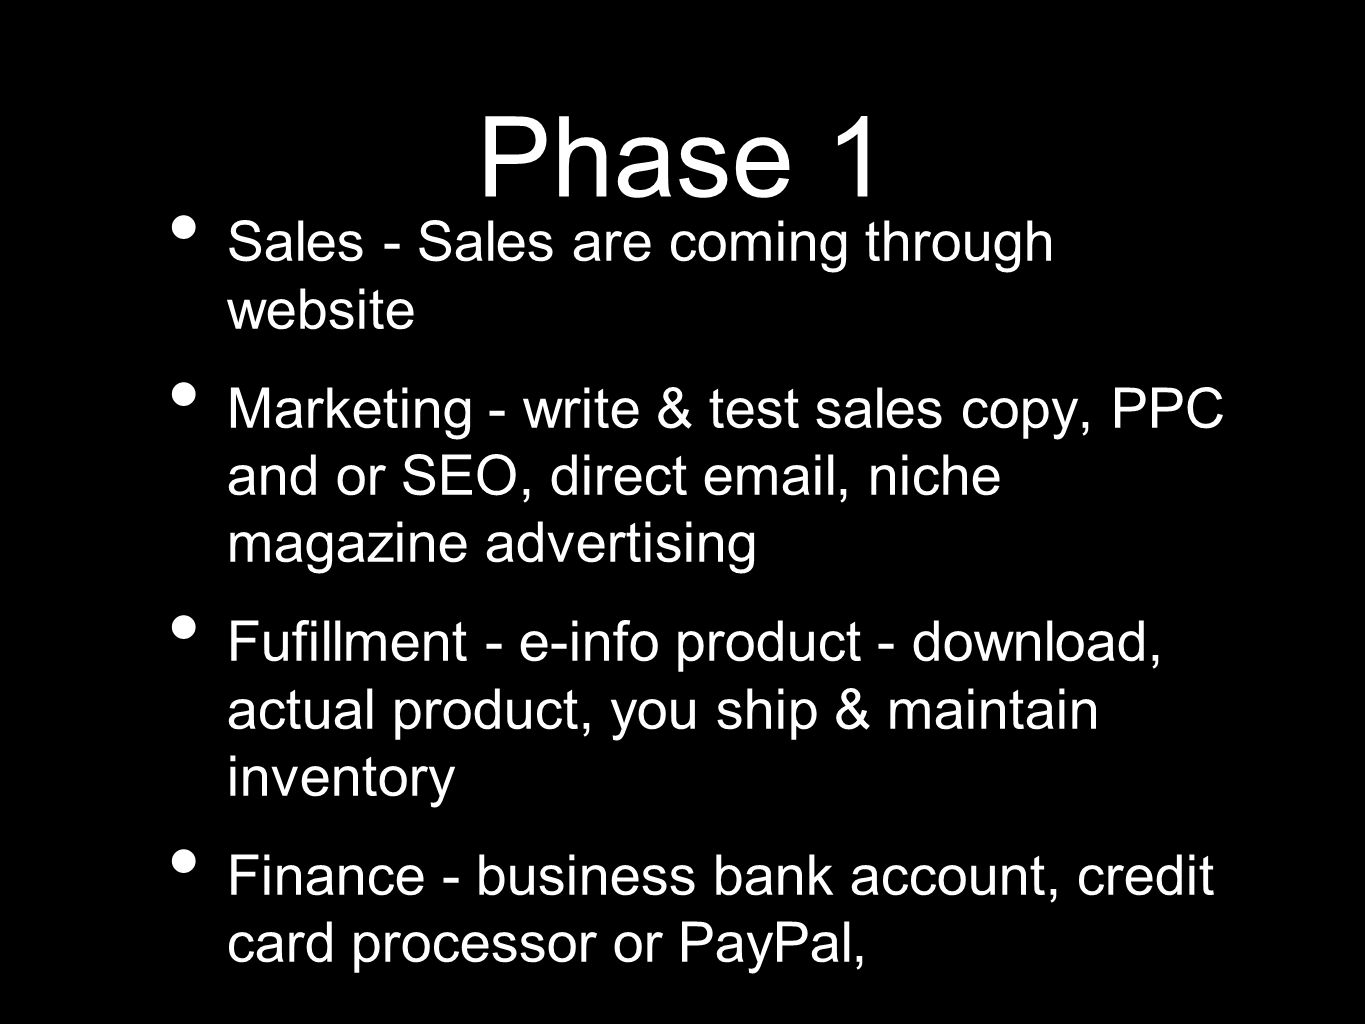 Phase 1 Sales - Sales are coming through website Marketing - write & test sales copy, PPC and or SEO, direct email, niche magazine advertising Fufillment - e-info product - download, actual product, you ship & maintain inventory Finance - business bank account, credit card processor or PayPal,